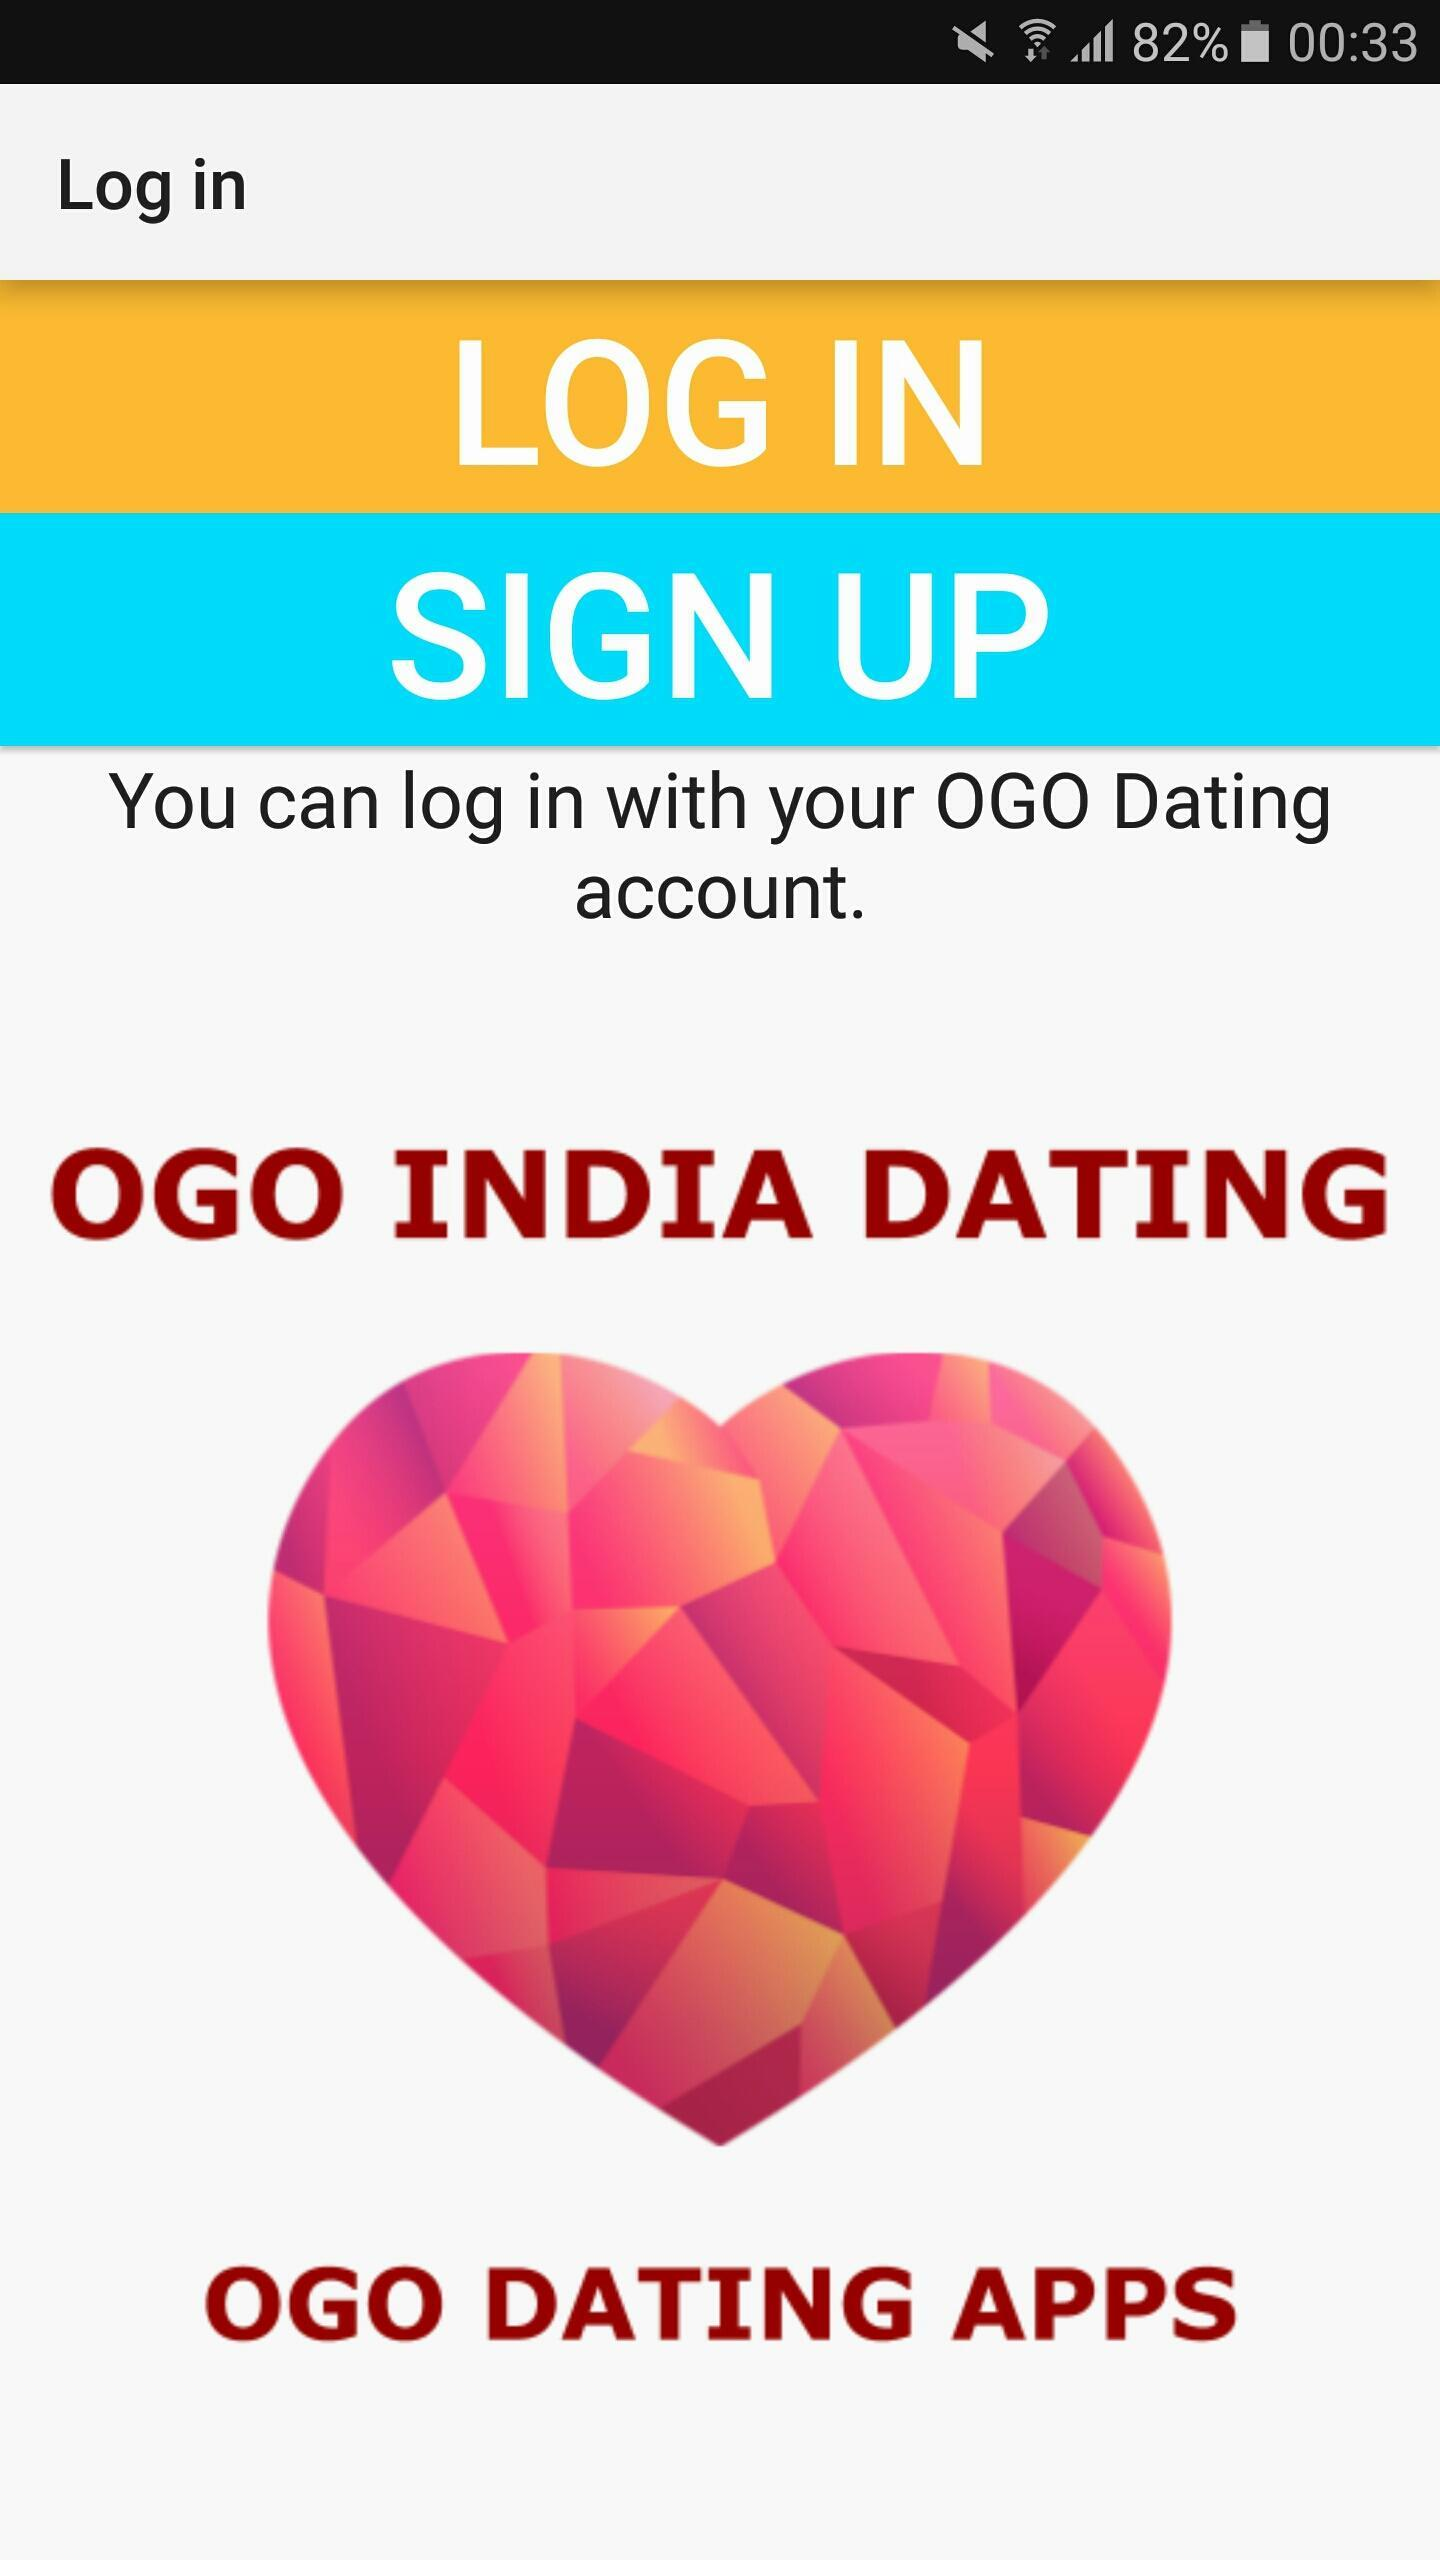 indien Dating App pour Android